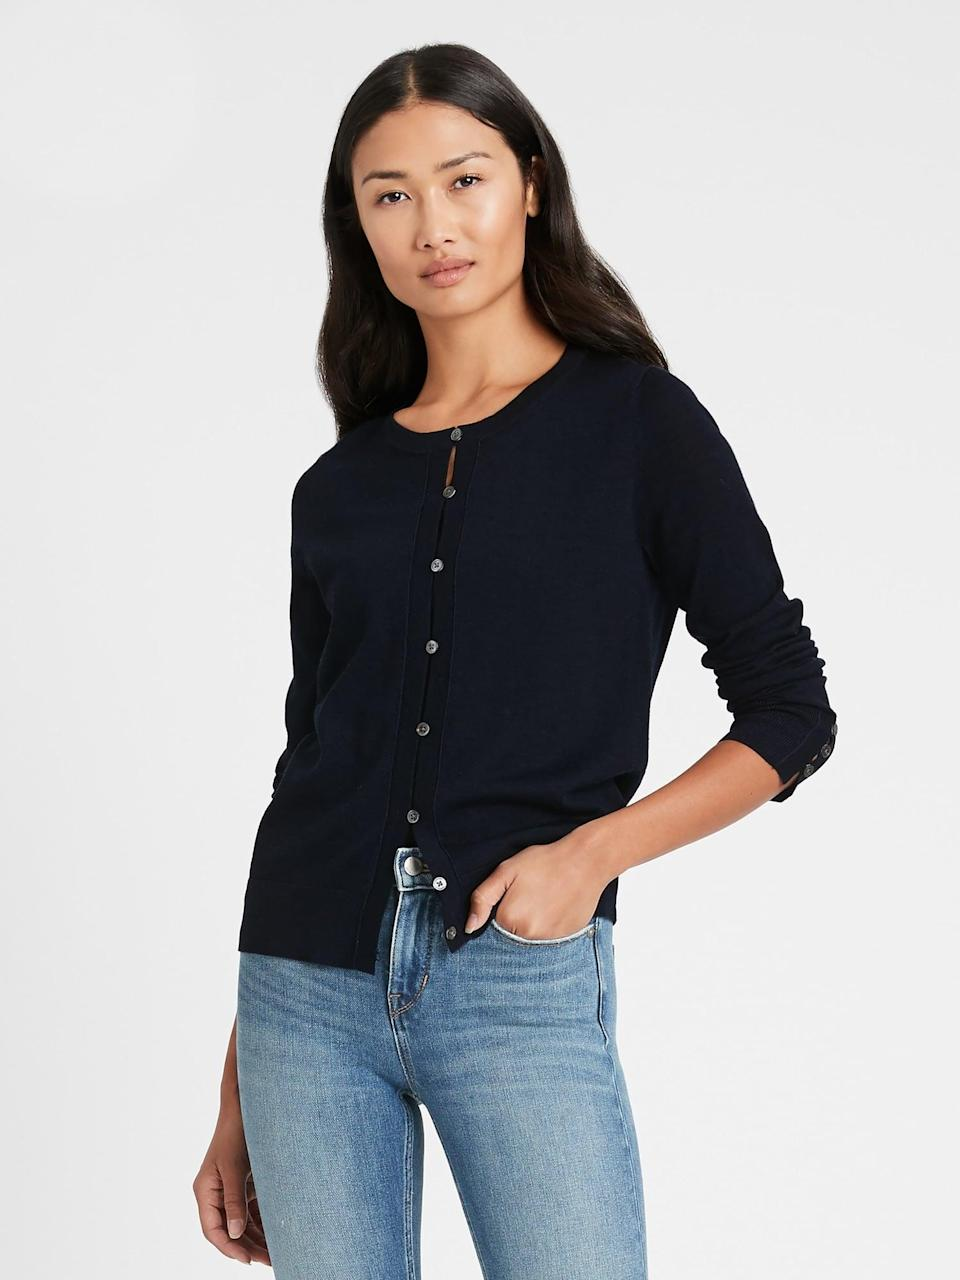 <p>This <span>Banana Republic Merino Cardigan Sweater in Responsible Wool in Navy</span> ($23, originally $80) is another stylish option. Wear buttoned up with a tank underneath and tucked in for a cool modern henley style look.</p>